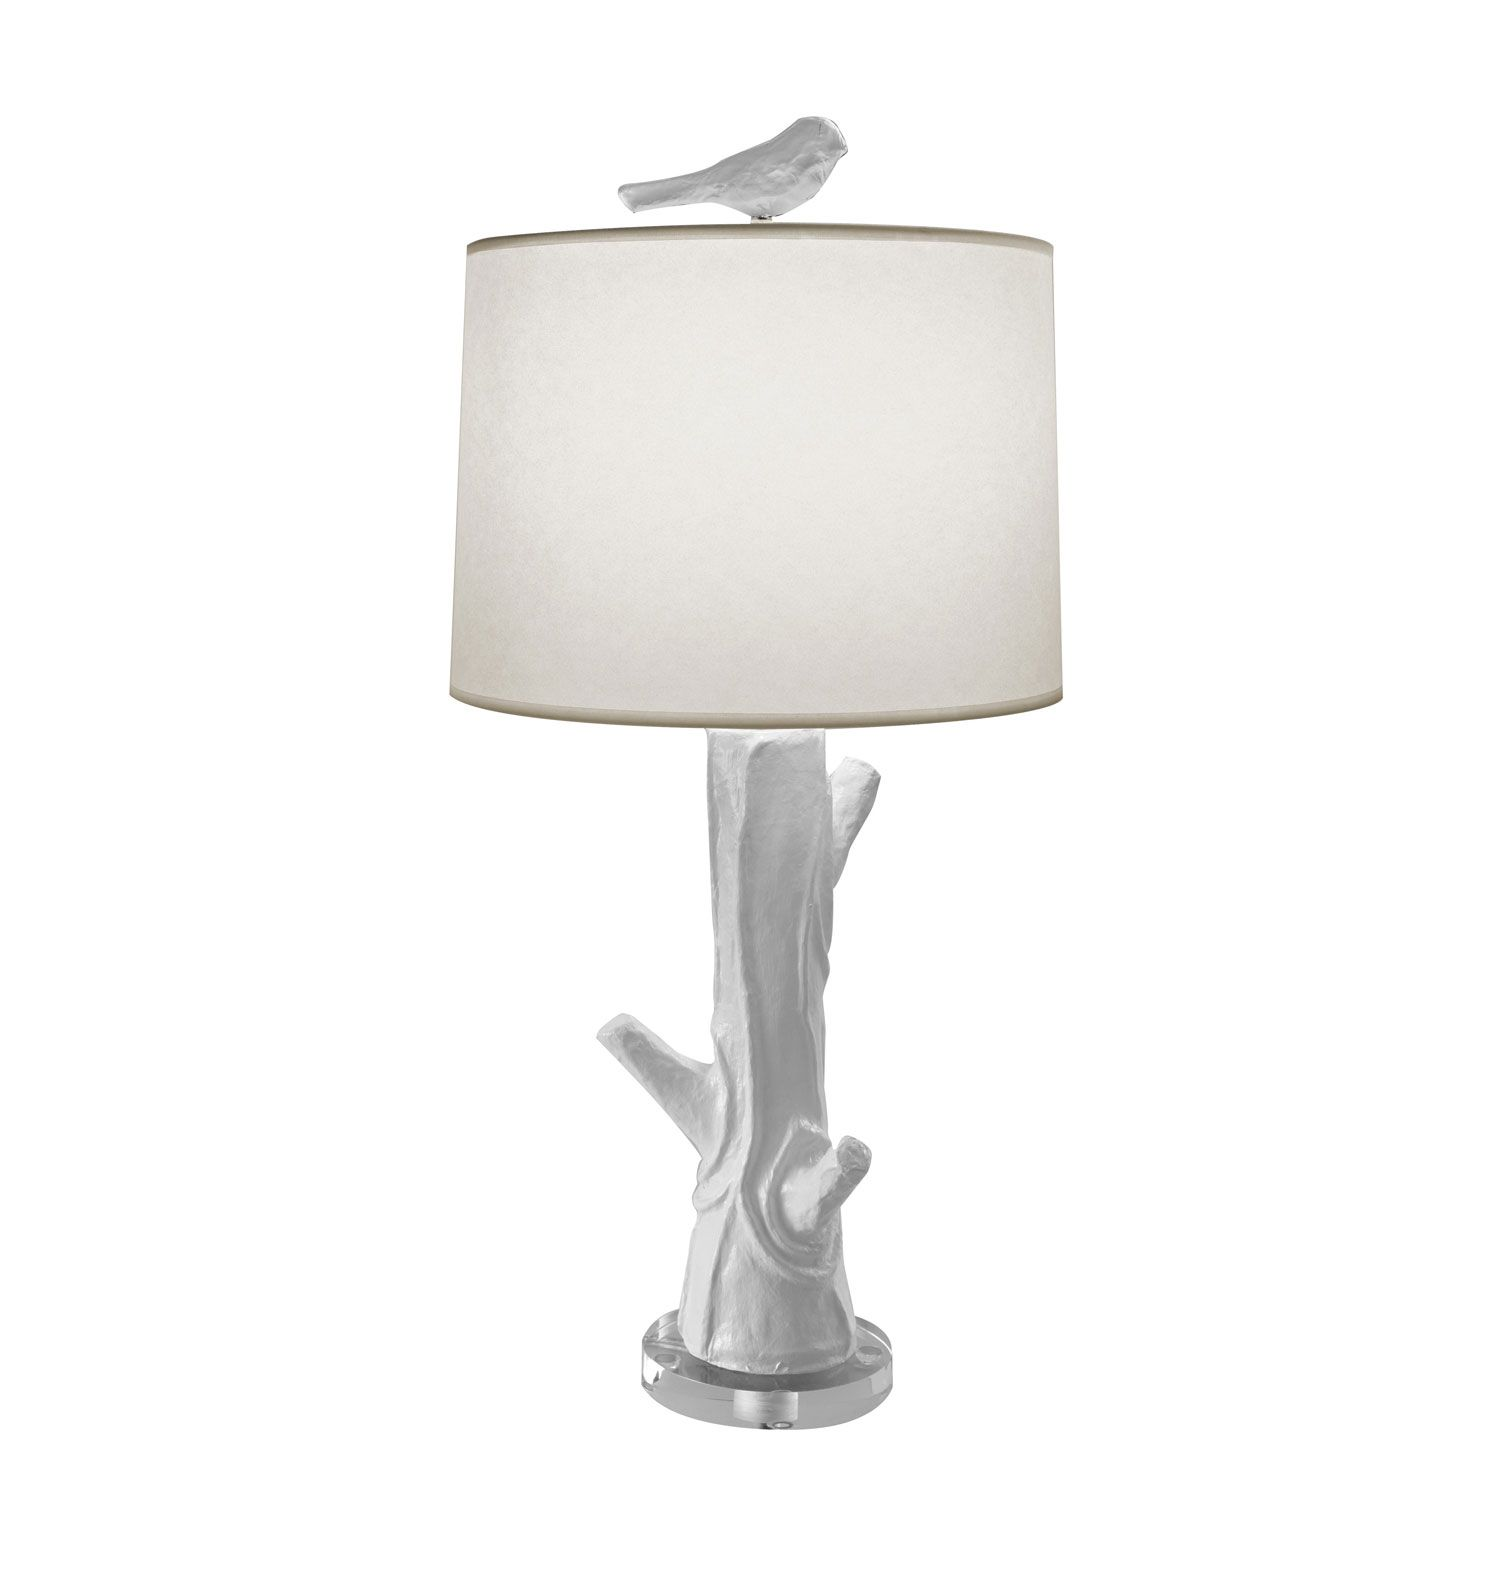 White table lamps bedroom - Find This Pin And More On Spa Resort Bedroom Immaculate White Trees Base Added Little Bird Accesories Shade Table Lamps